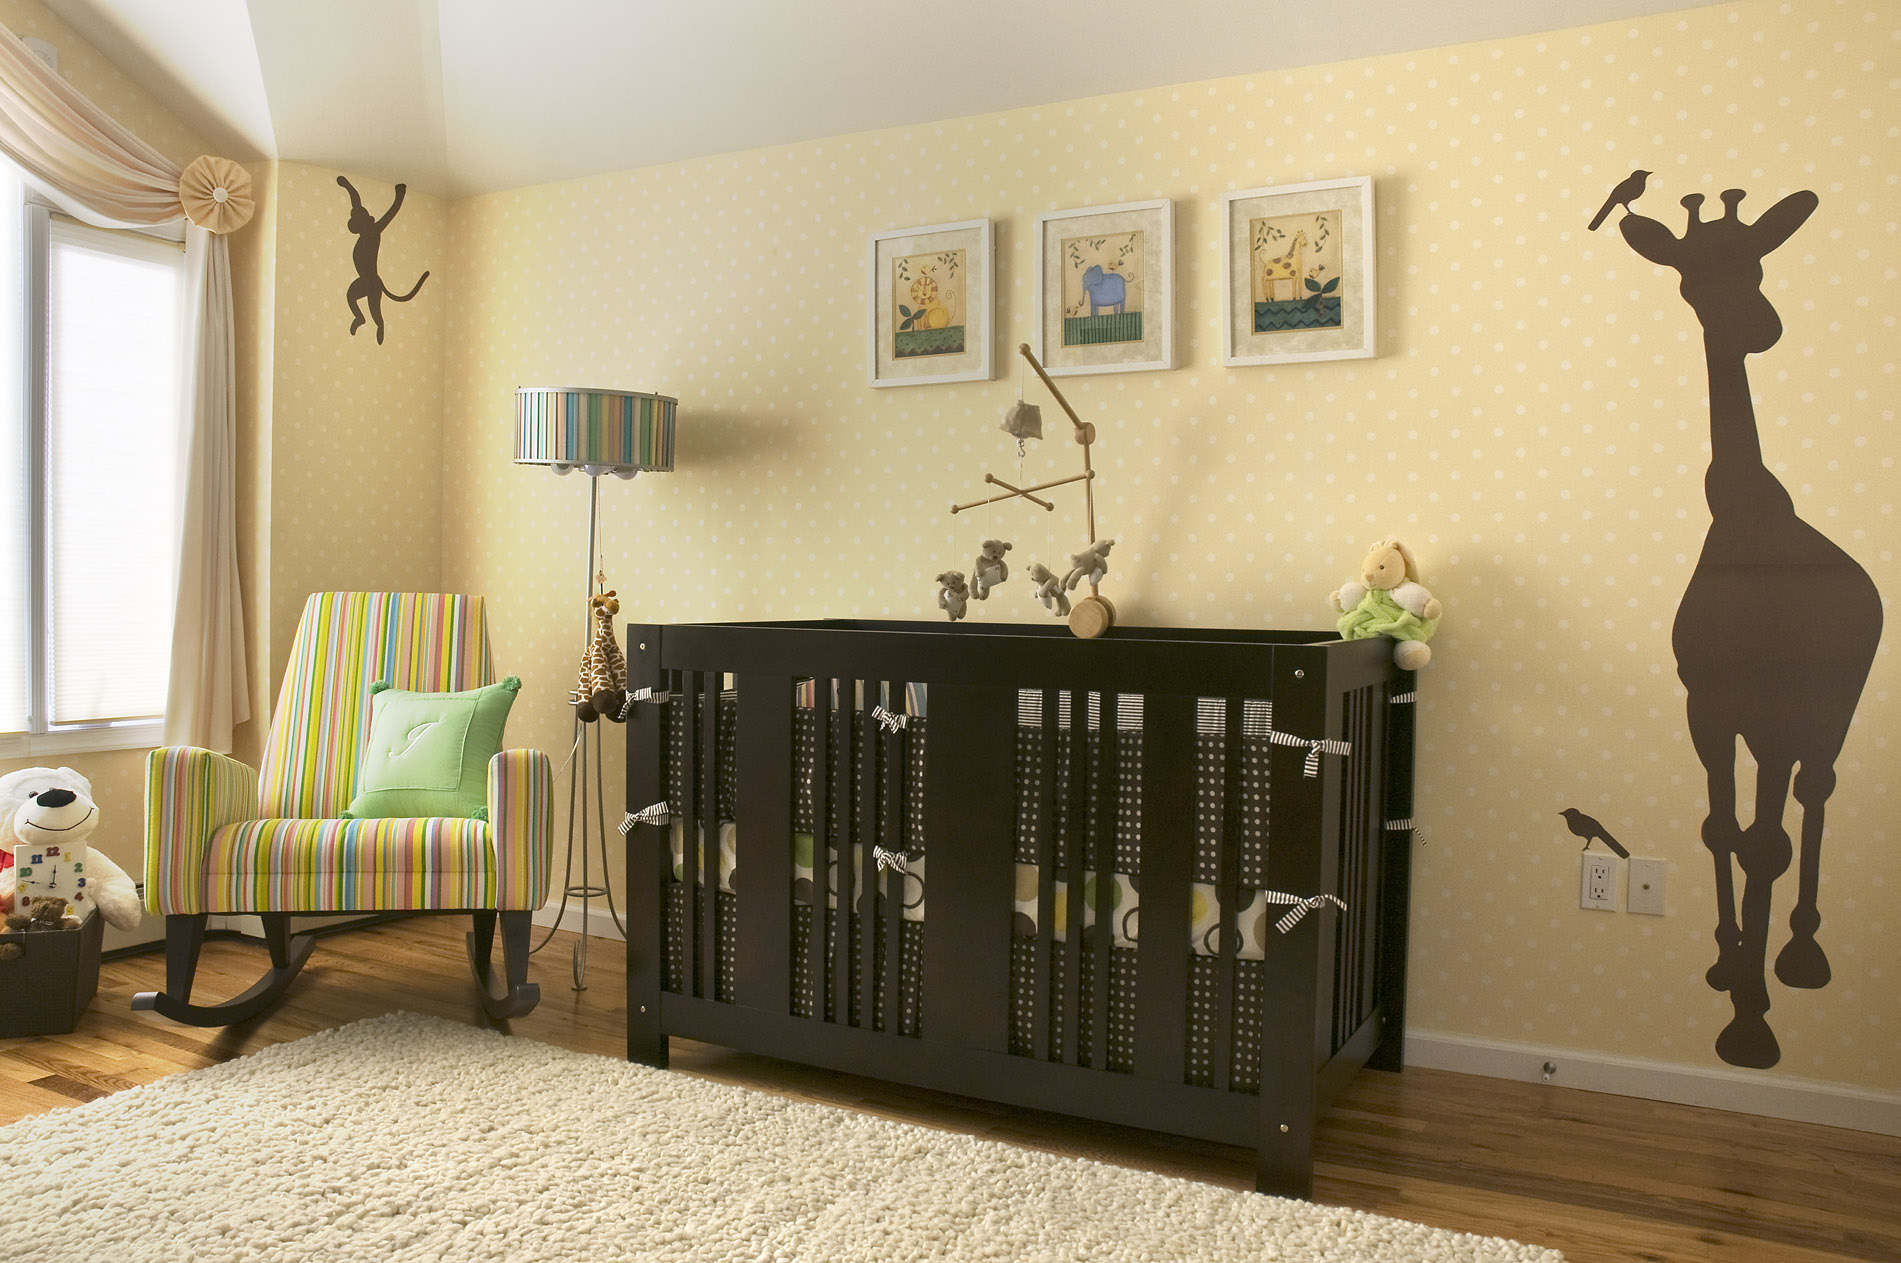 Themes For Baby Rooms Ideas | HomesFeed